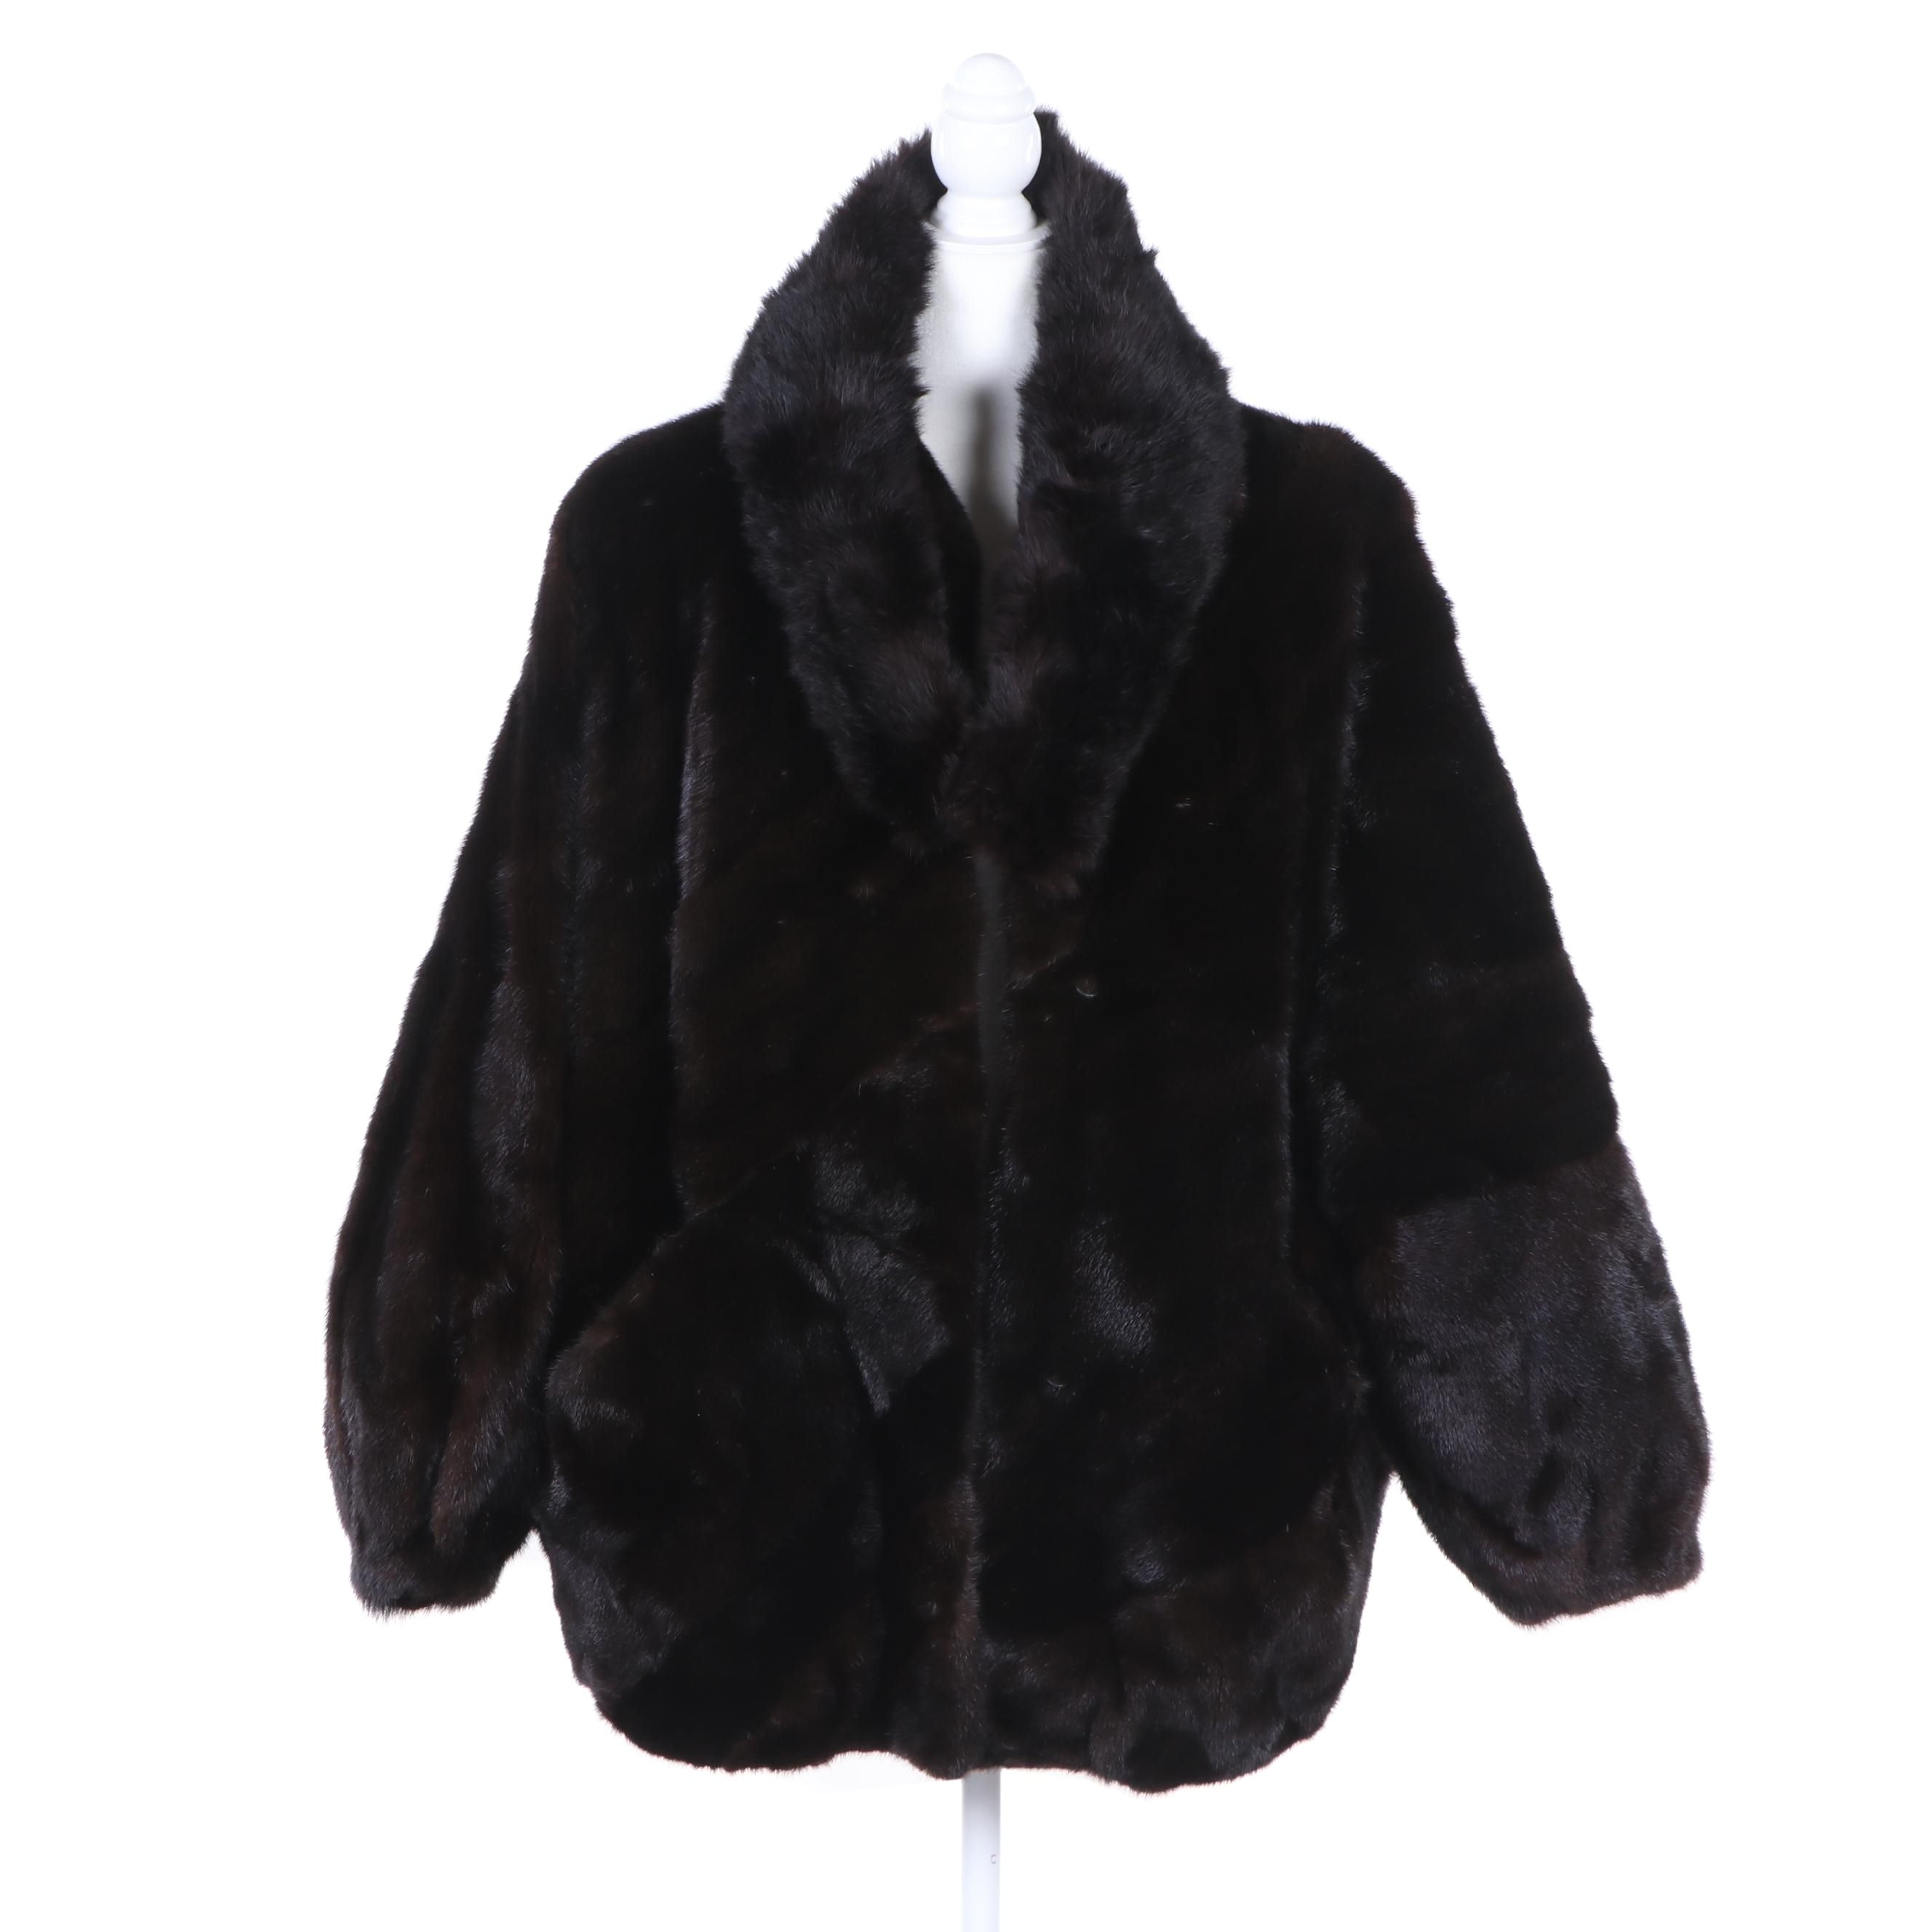 Louis Féraud Fourrure from Nan Dustin Mink Fur Coat and Fur Collar